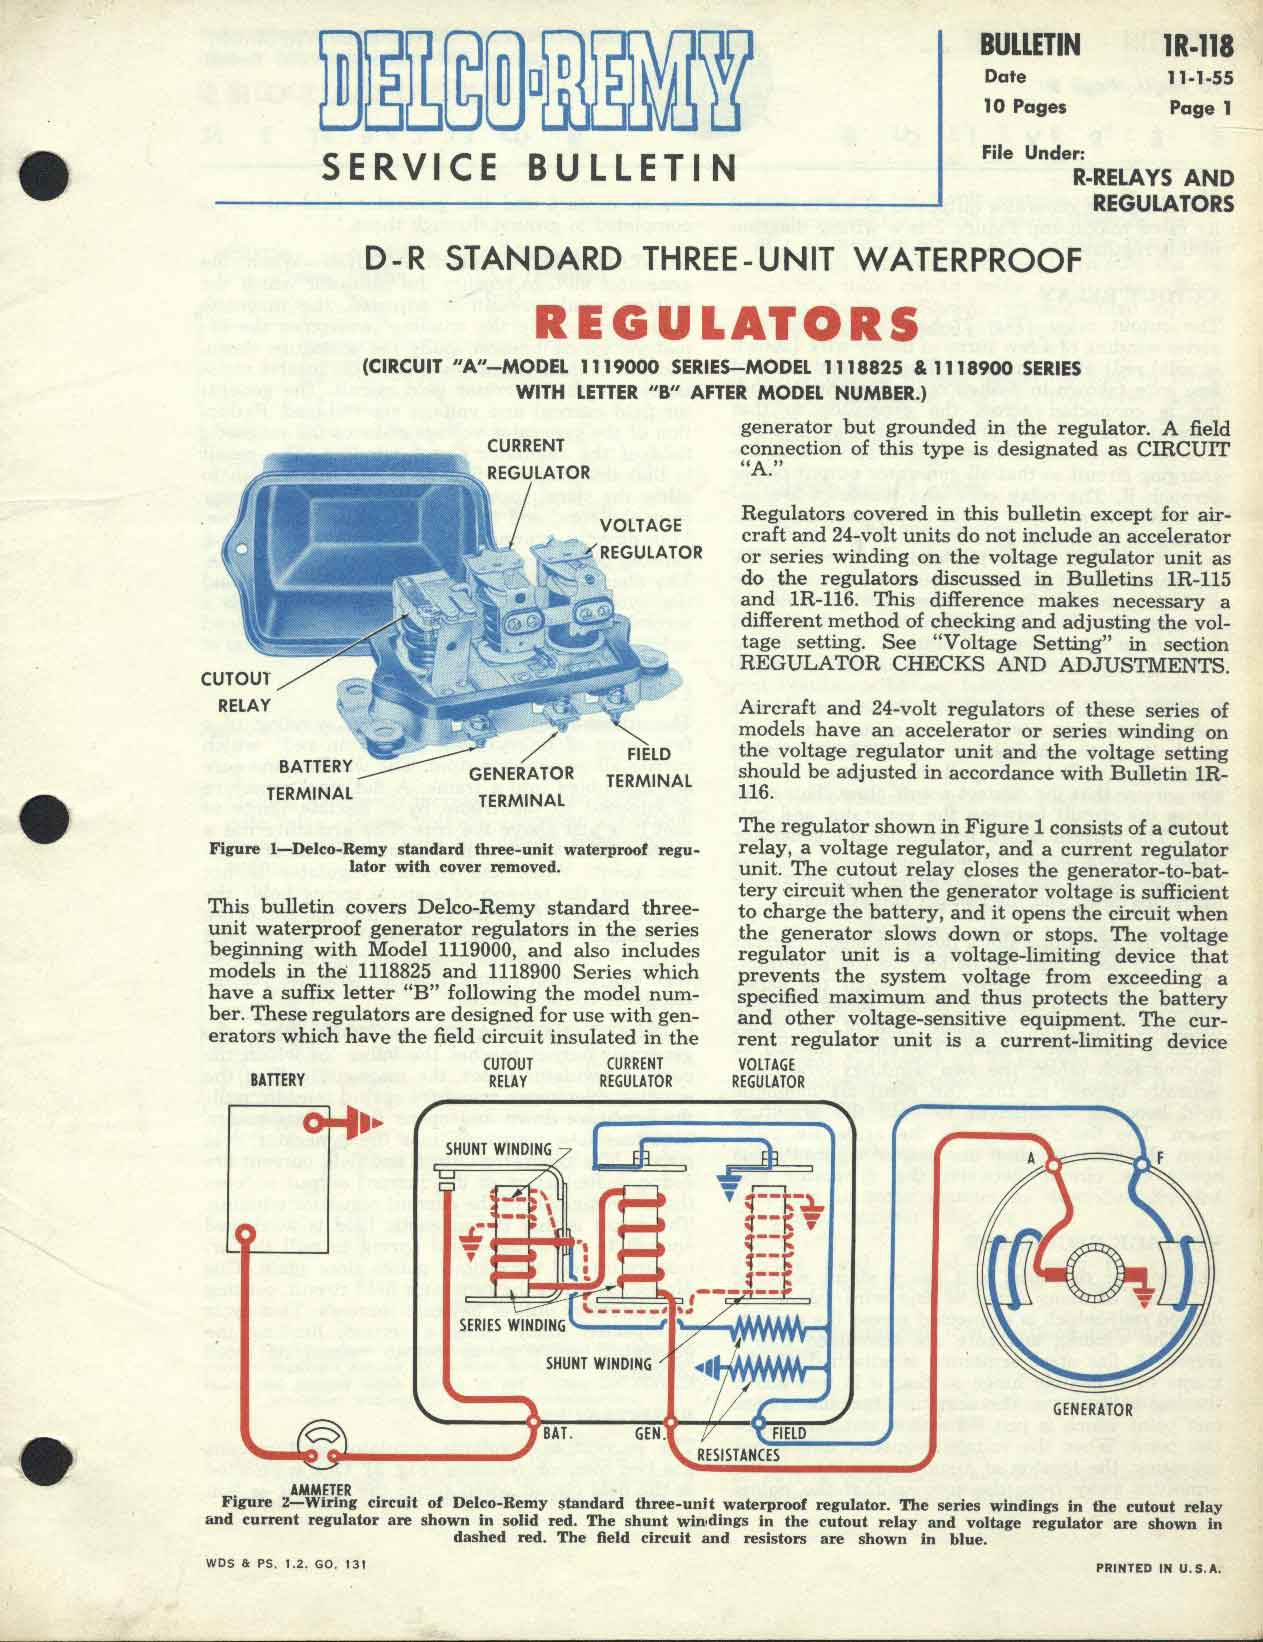 [SCHEMATICS_48EU]  Delco-Remy Bulletin No. 1R-118 Standard type three unit waterproof regulator | Delco Remy Regulator Wiring Diagram |  | Panhead and Flathead site